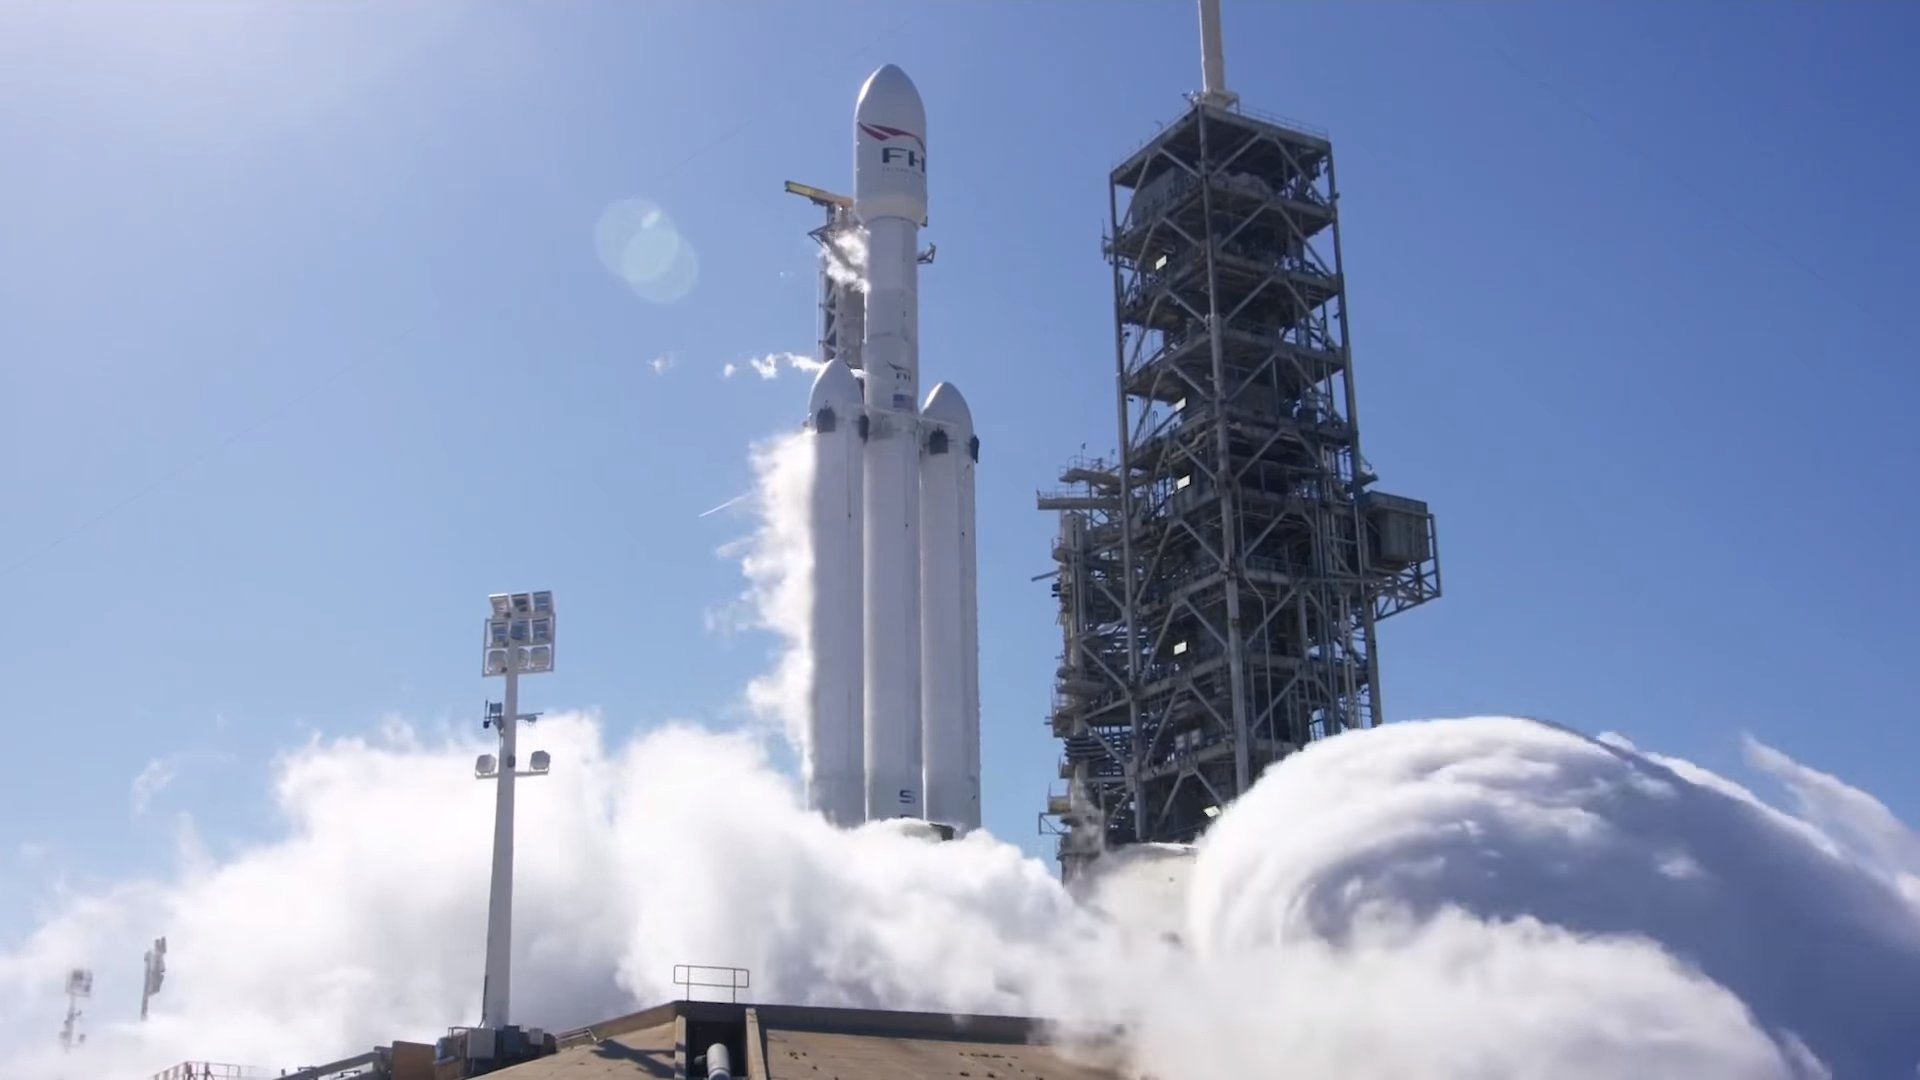 spacex falcon heavy launch today - HD1600×840